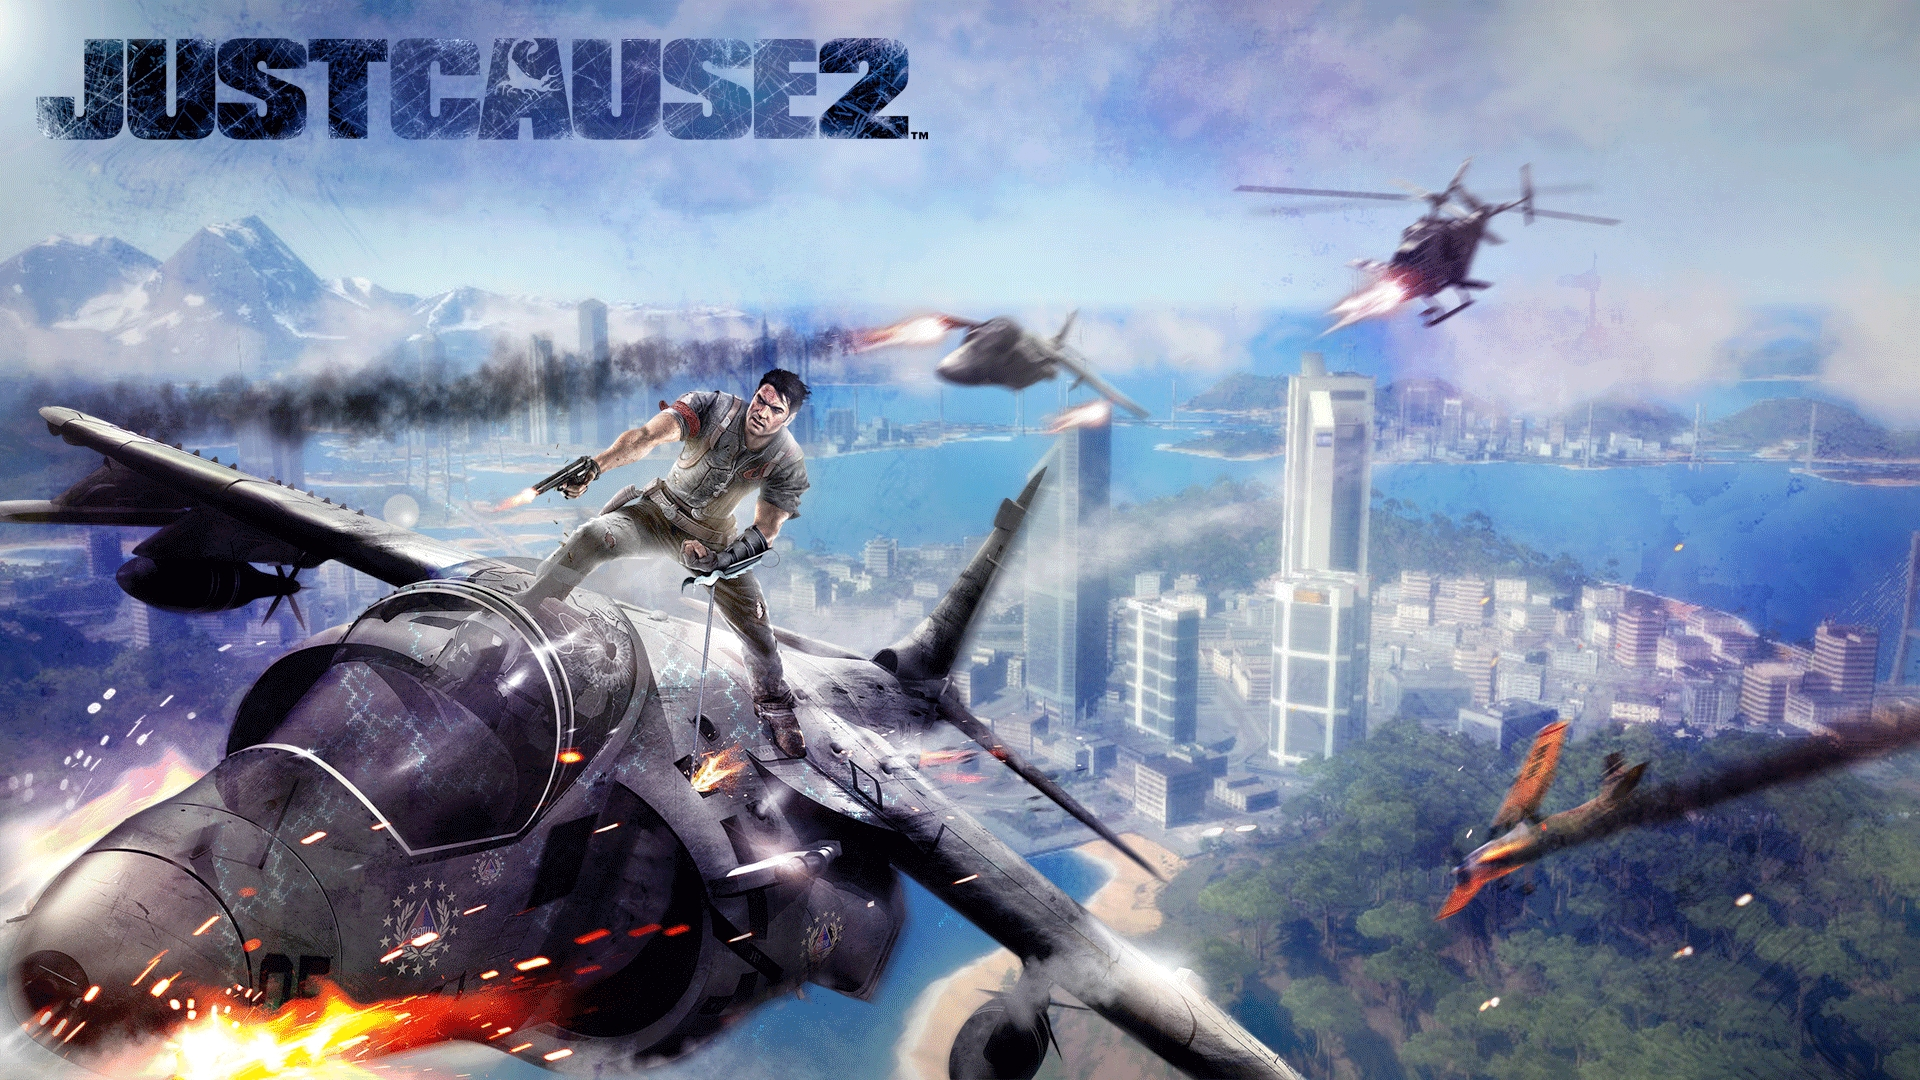 just cause 2 wallpapers, 33 widescreen hd wallpapers of just cause 2